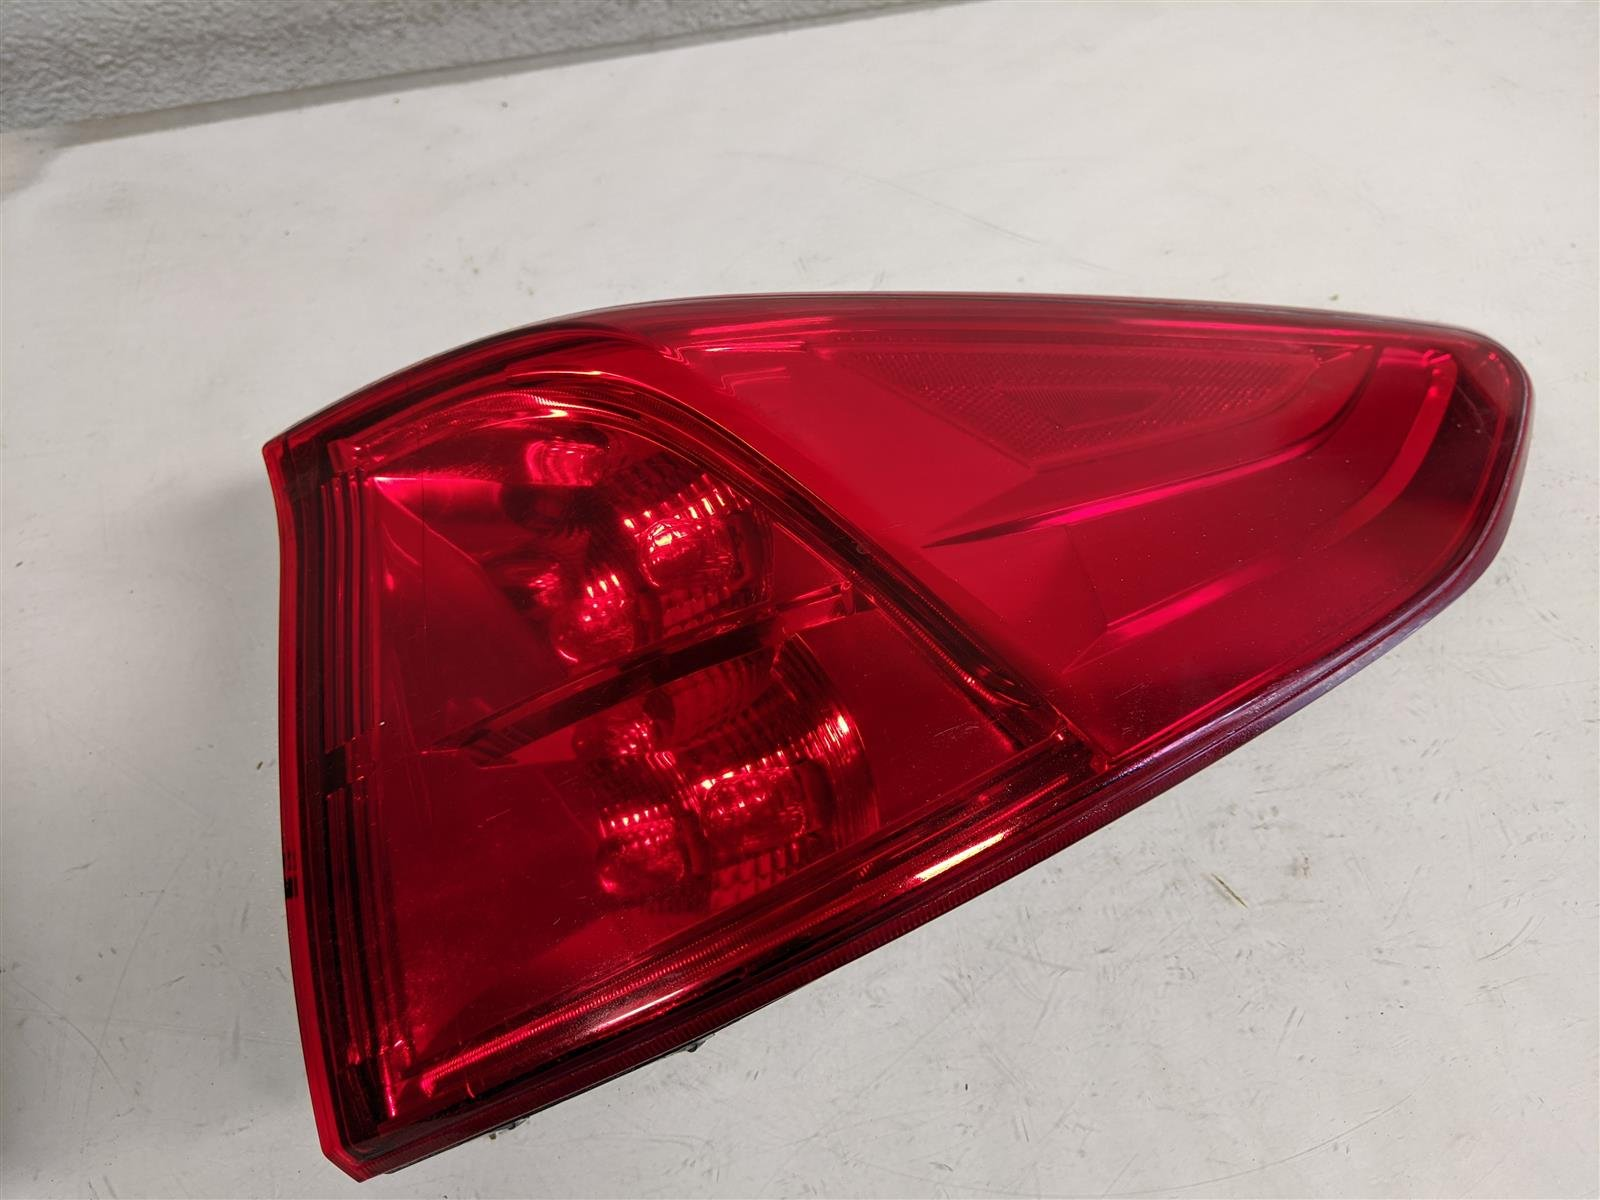 2018 Honda Odyssey Passenger Tail Light Lamp Replacement